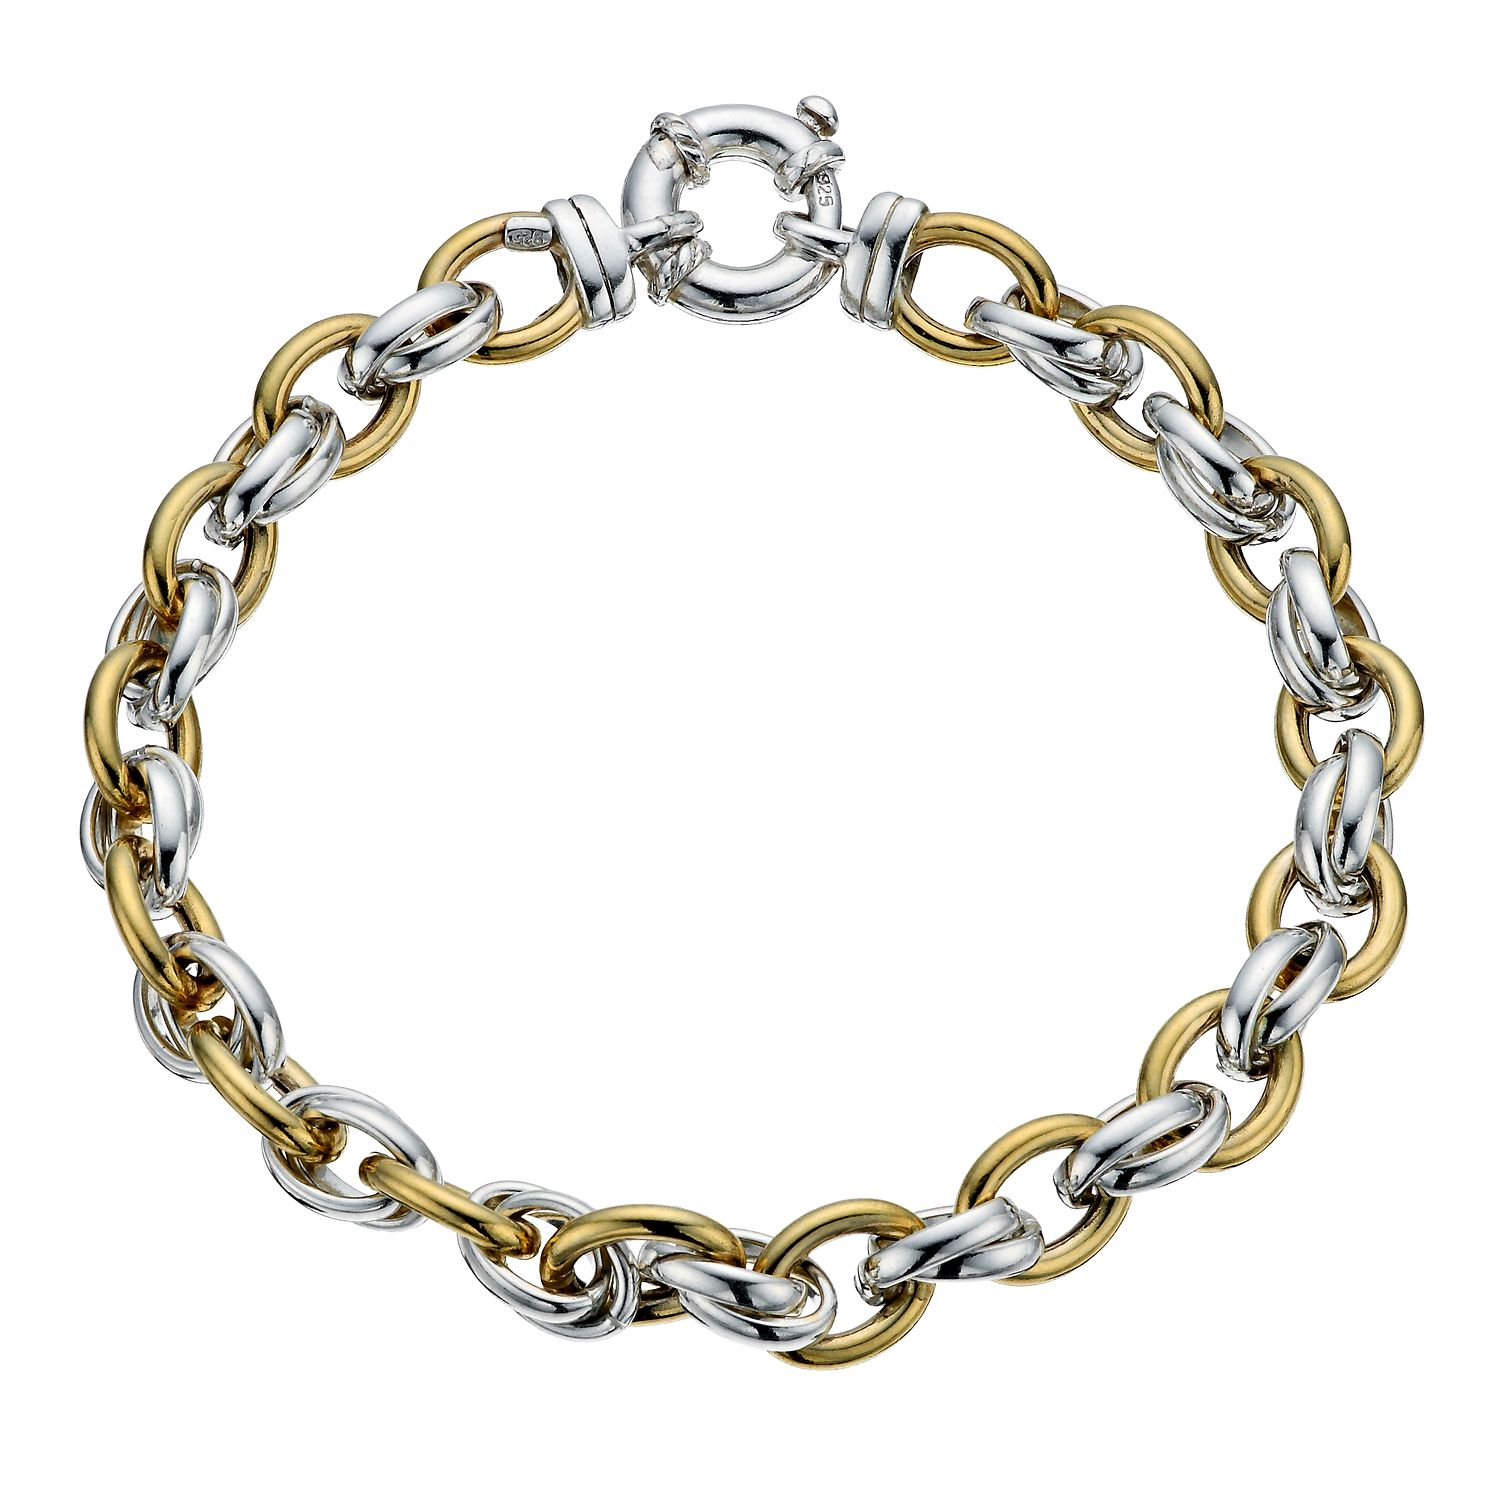 9ct Yellow Gold & Sterling Silver Linked Bracelet - Product number 9978518